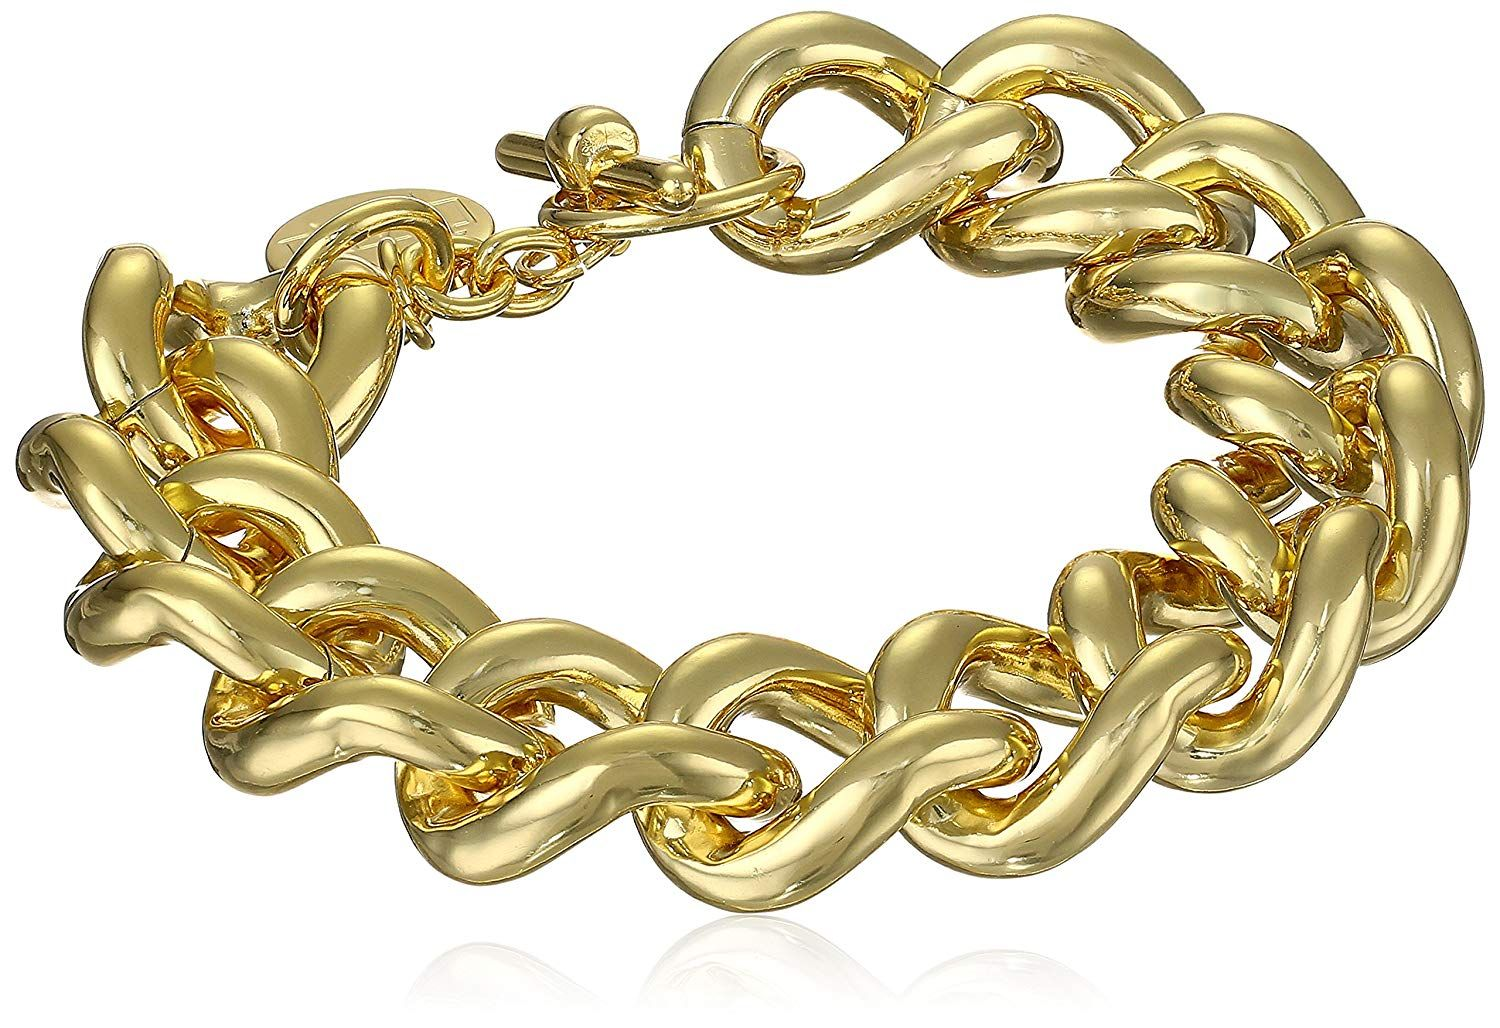 af16a09e3 Unoaerre 1AR by 18k Gold-Plated Groumette Chain Link Bracelet, 8.5' ***  Thanks for having visited our picture. (This is our affiliate link)  #linkbracelets